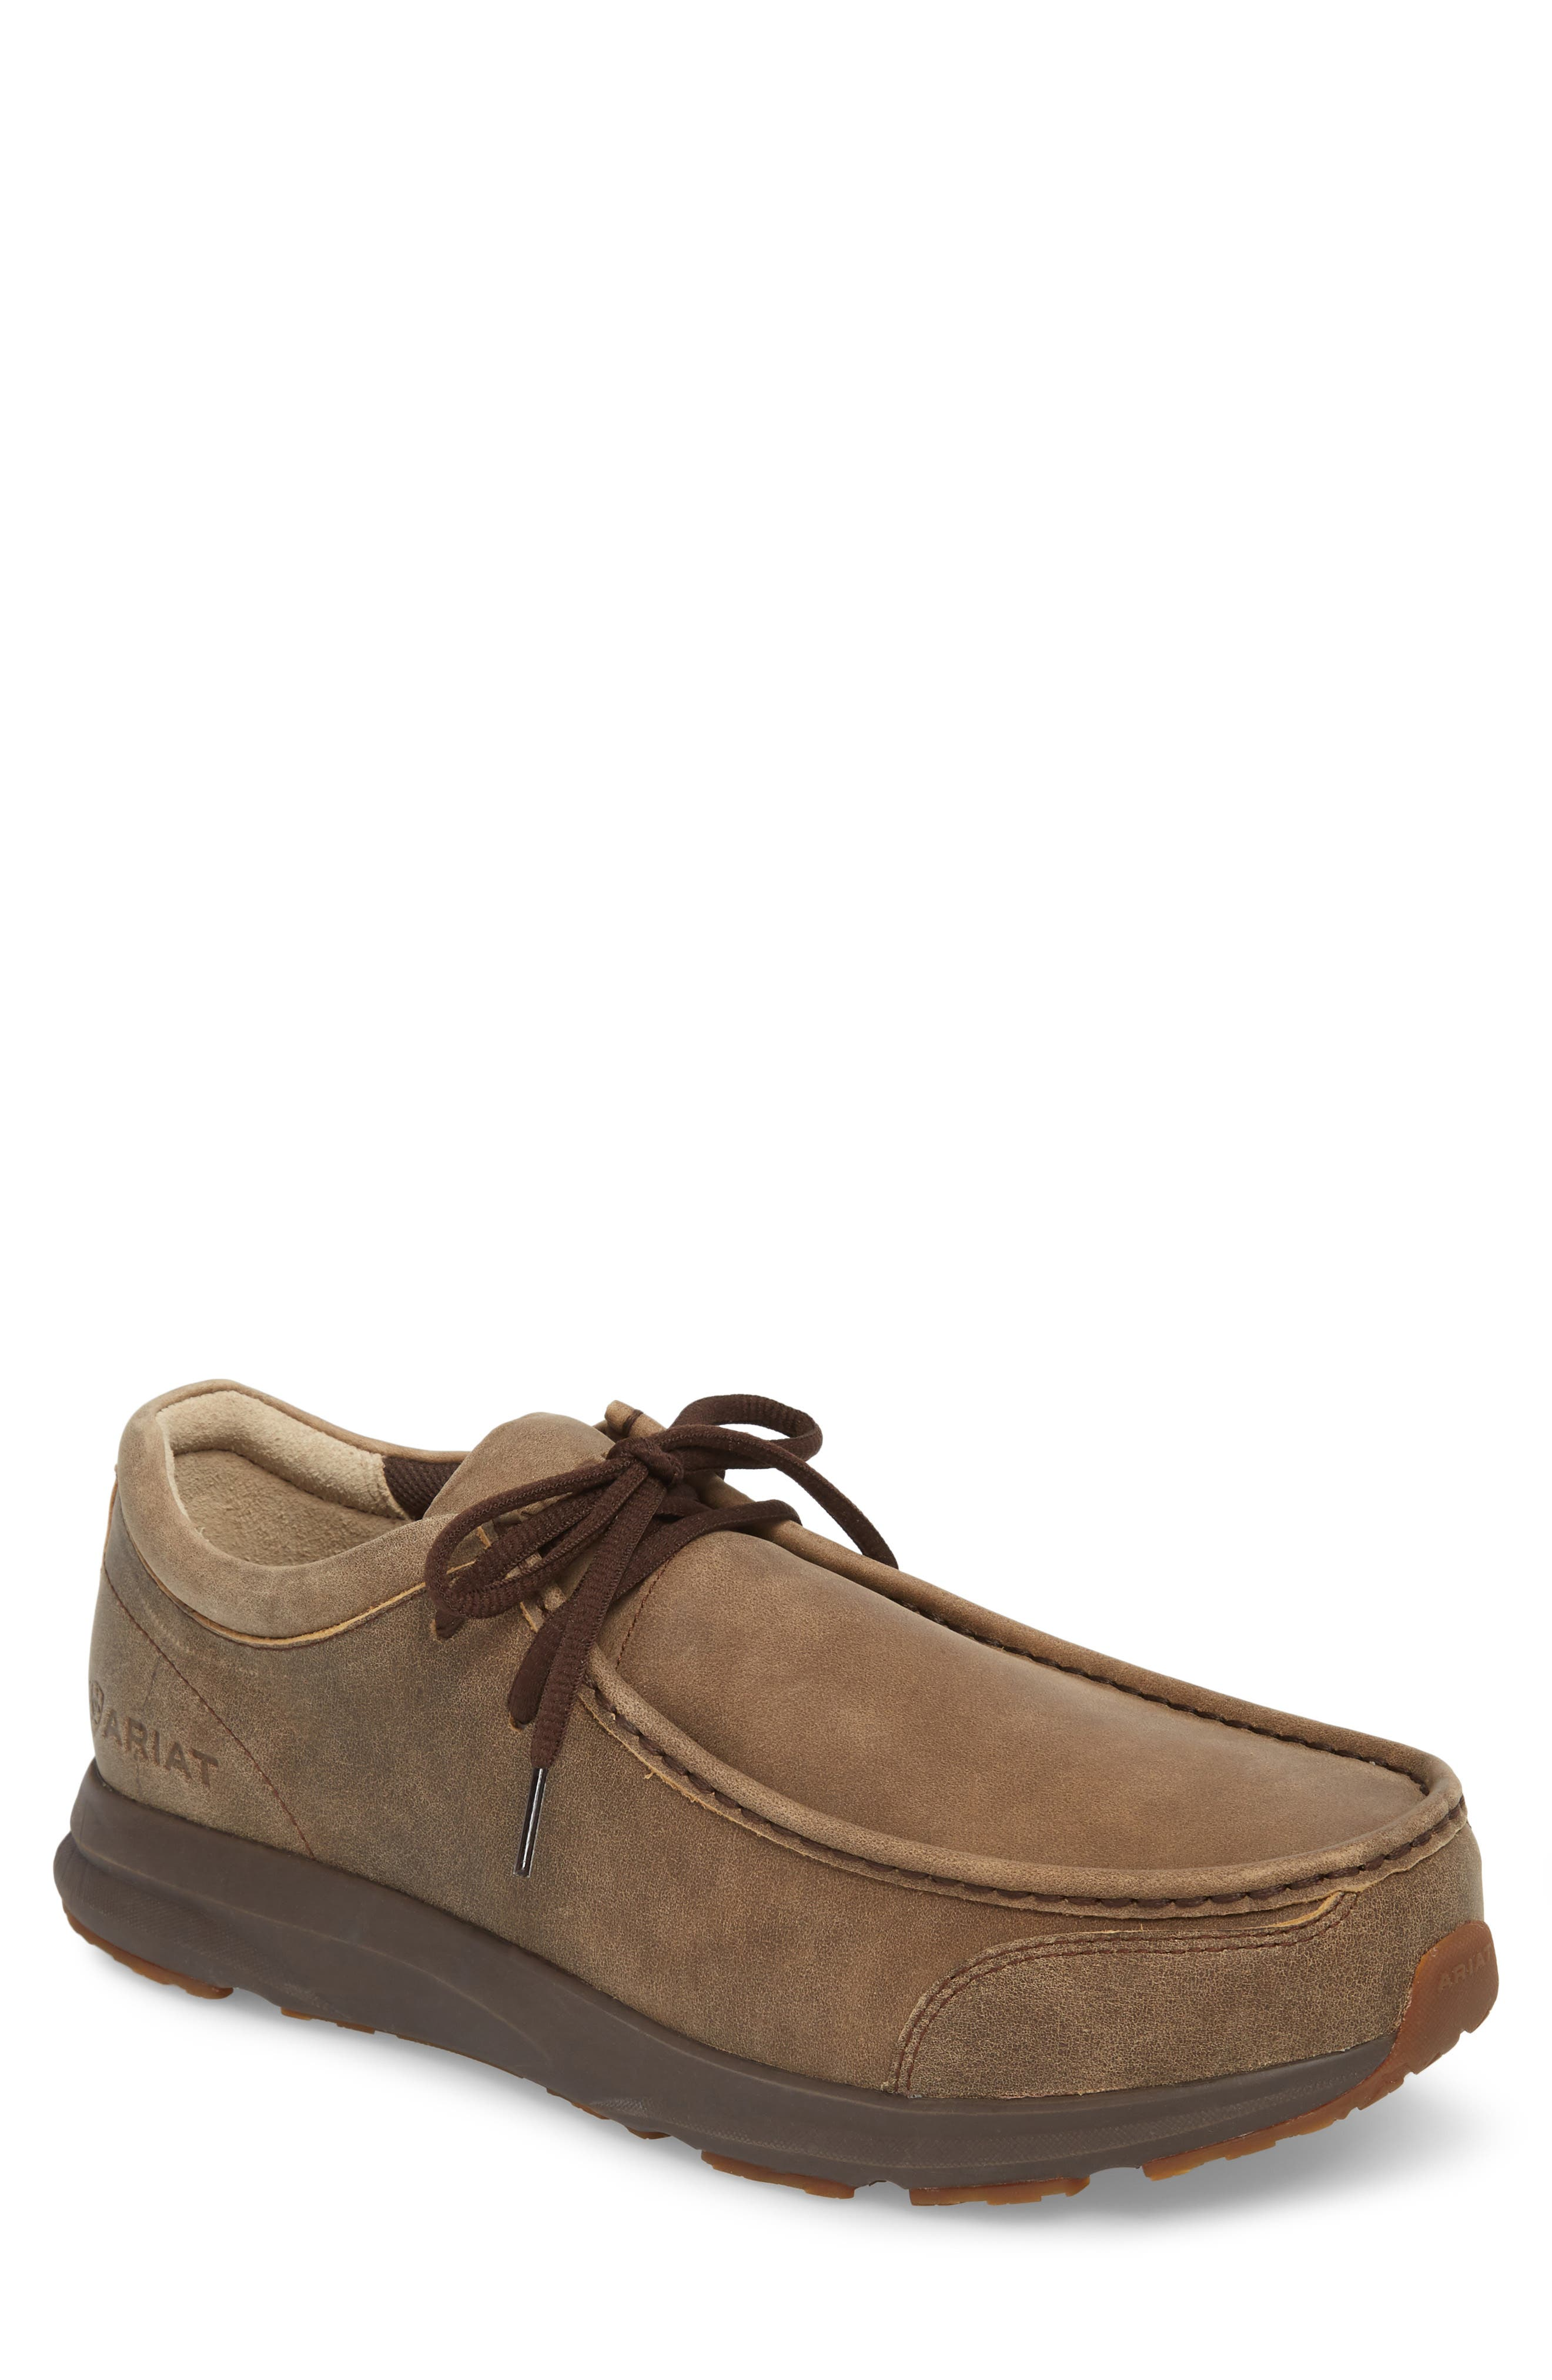 Spitfire Moc Toe Lace-Up,                         Main,                         color, BROWN LEATHER